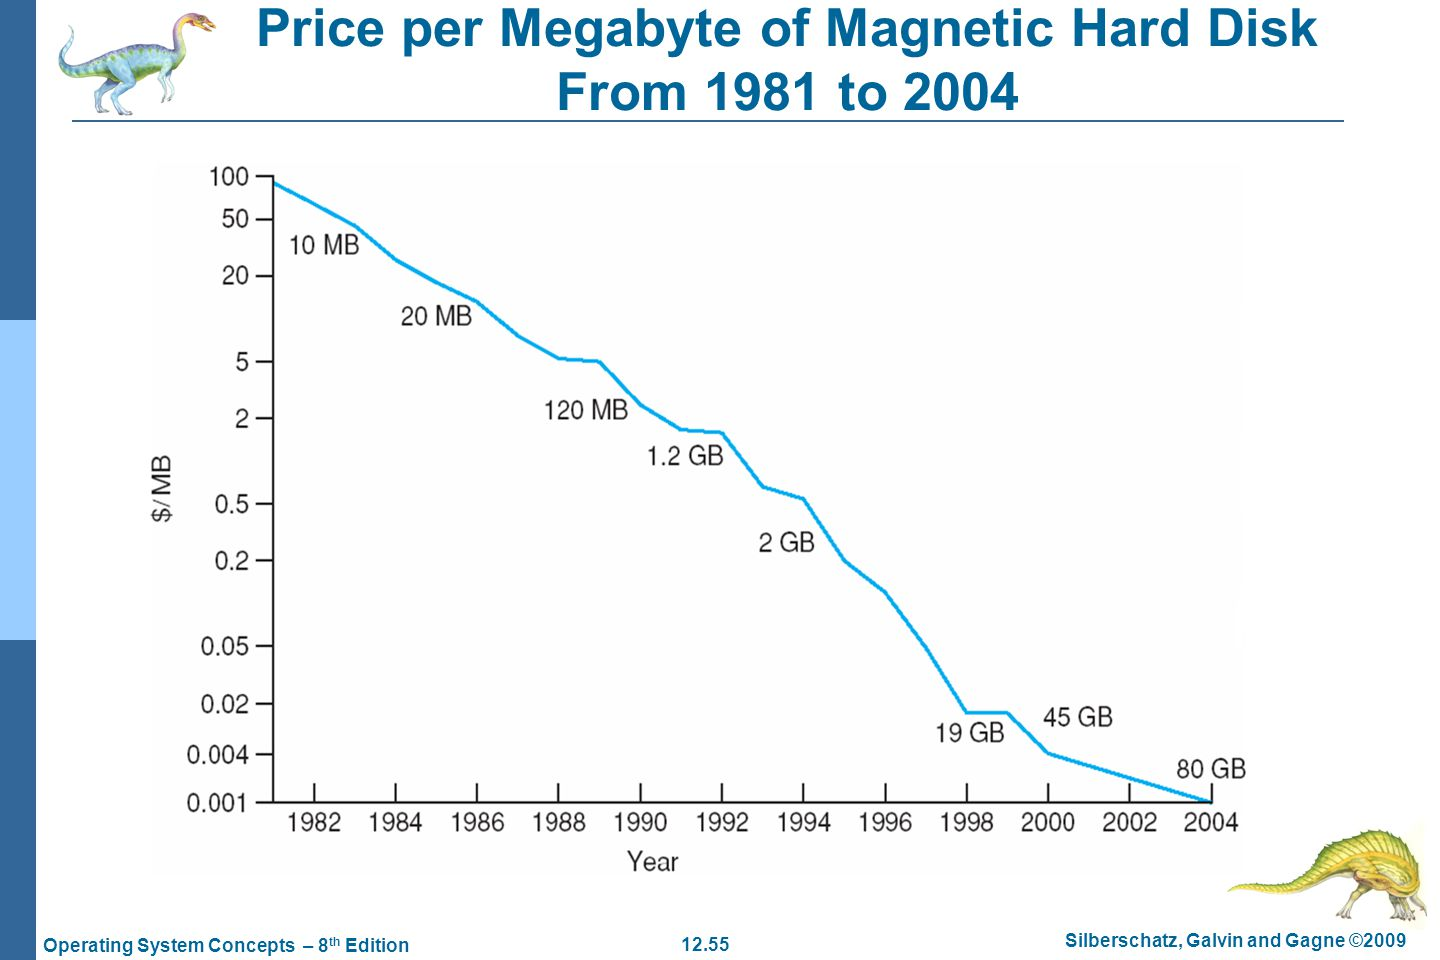 Price per Megabyte of Magnetic Hard Disk From 1981 to 2004